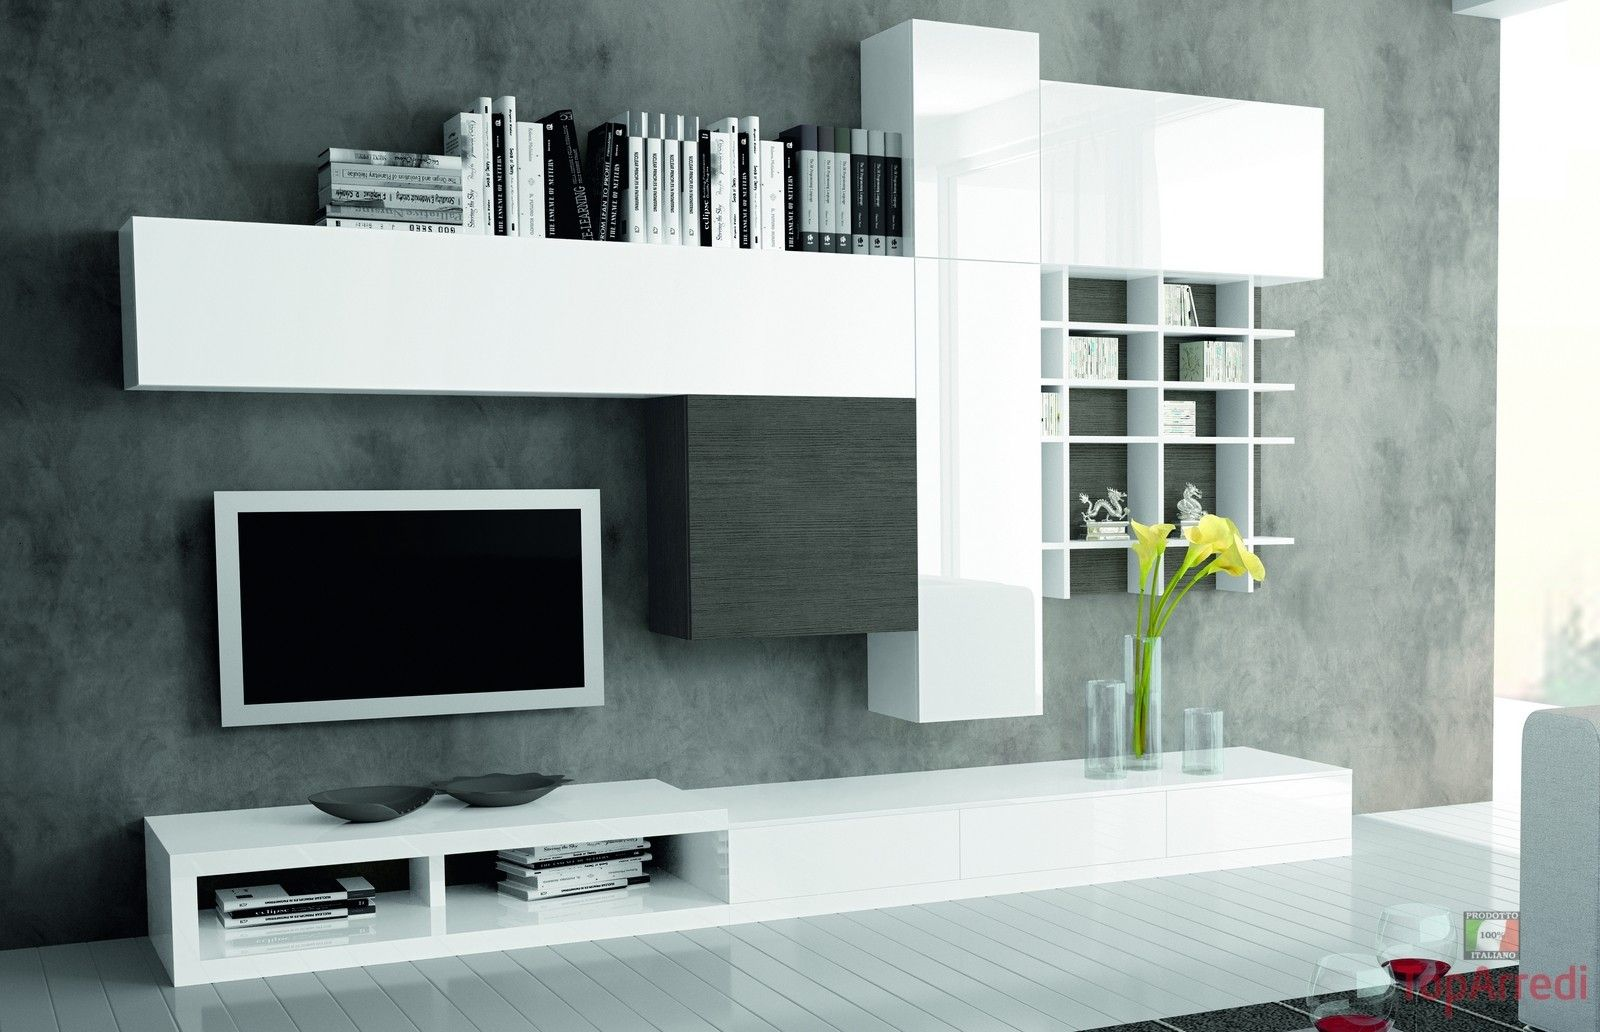 Pin by Yoni Suprasetyono on TV cabinet in 2018 | Pinterest | Living ...